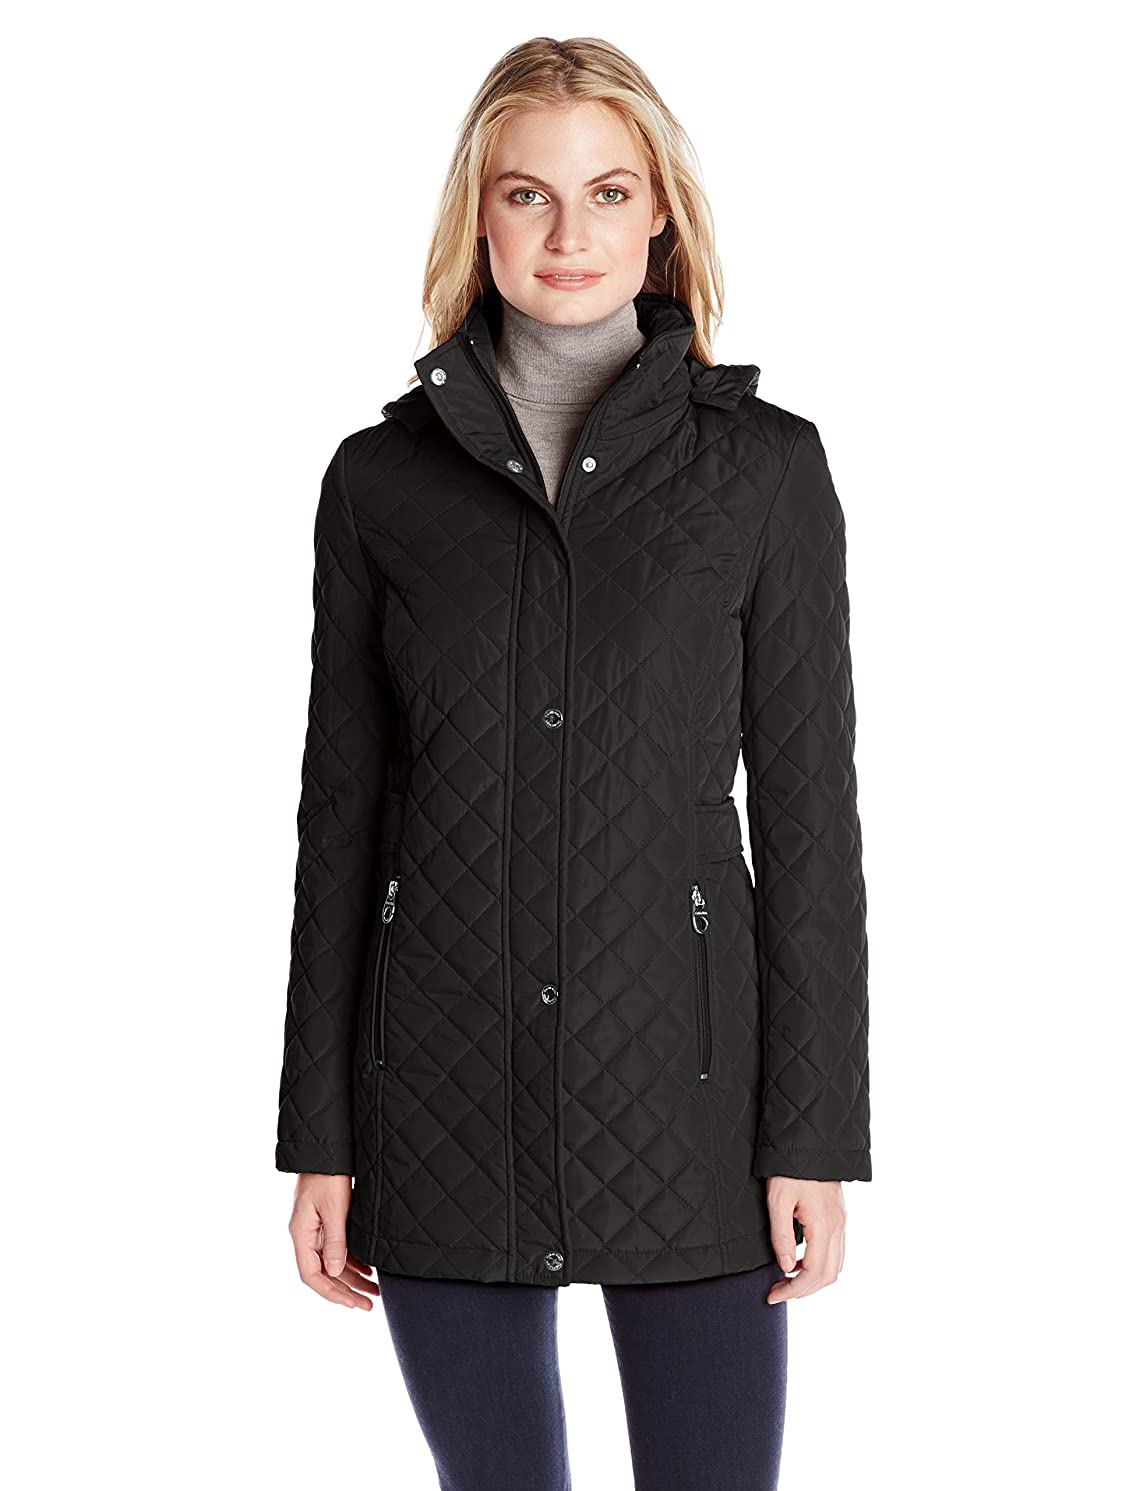 Calvin Klein Women's Classic Quilted Jacket with Side Tabs